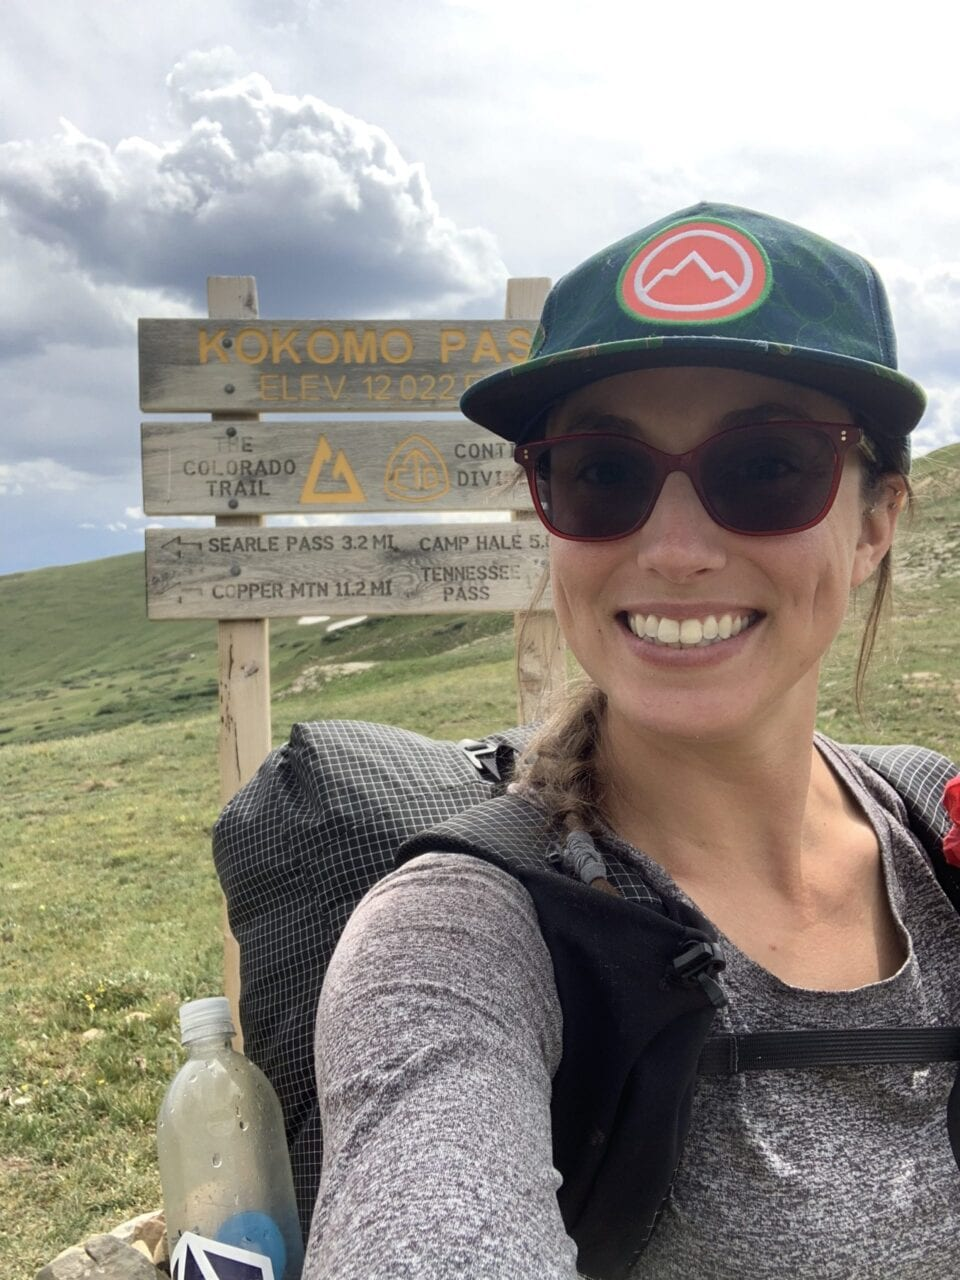 A woman taking a selfie on the Colorado Trail.